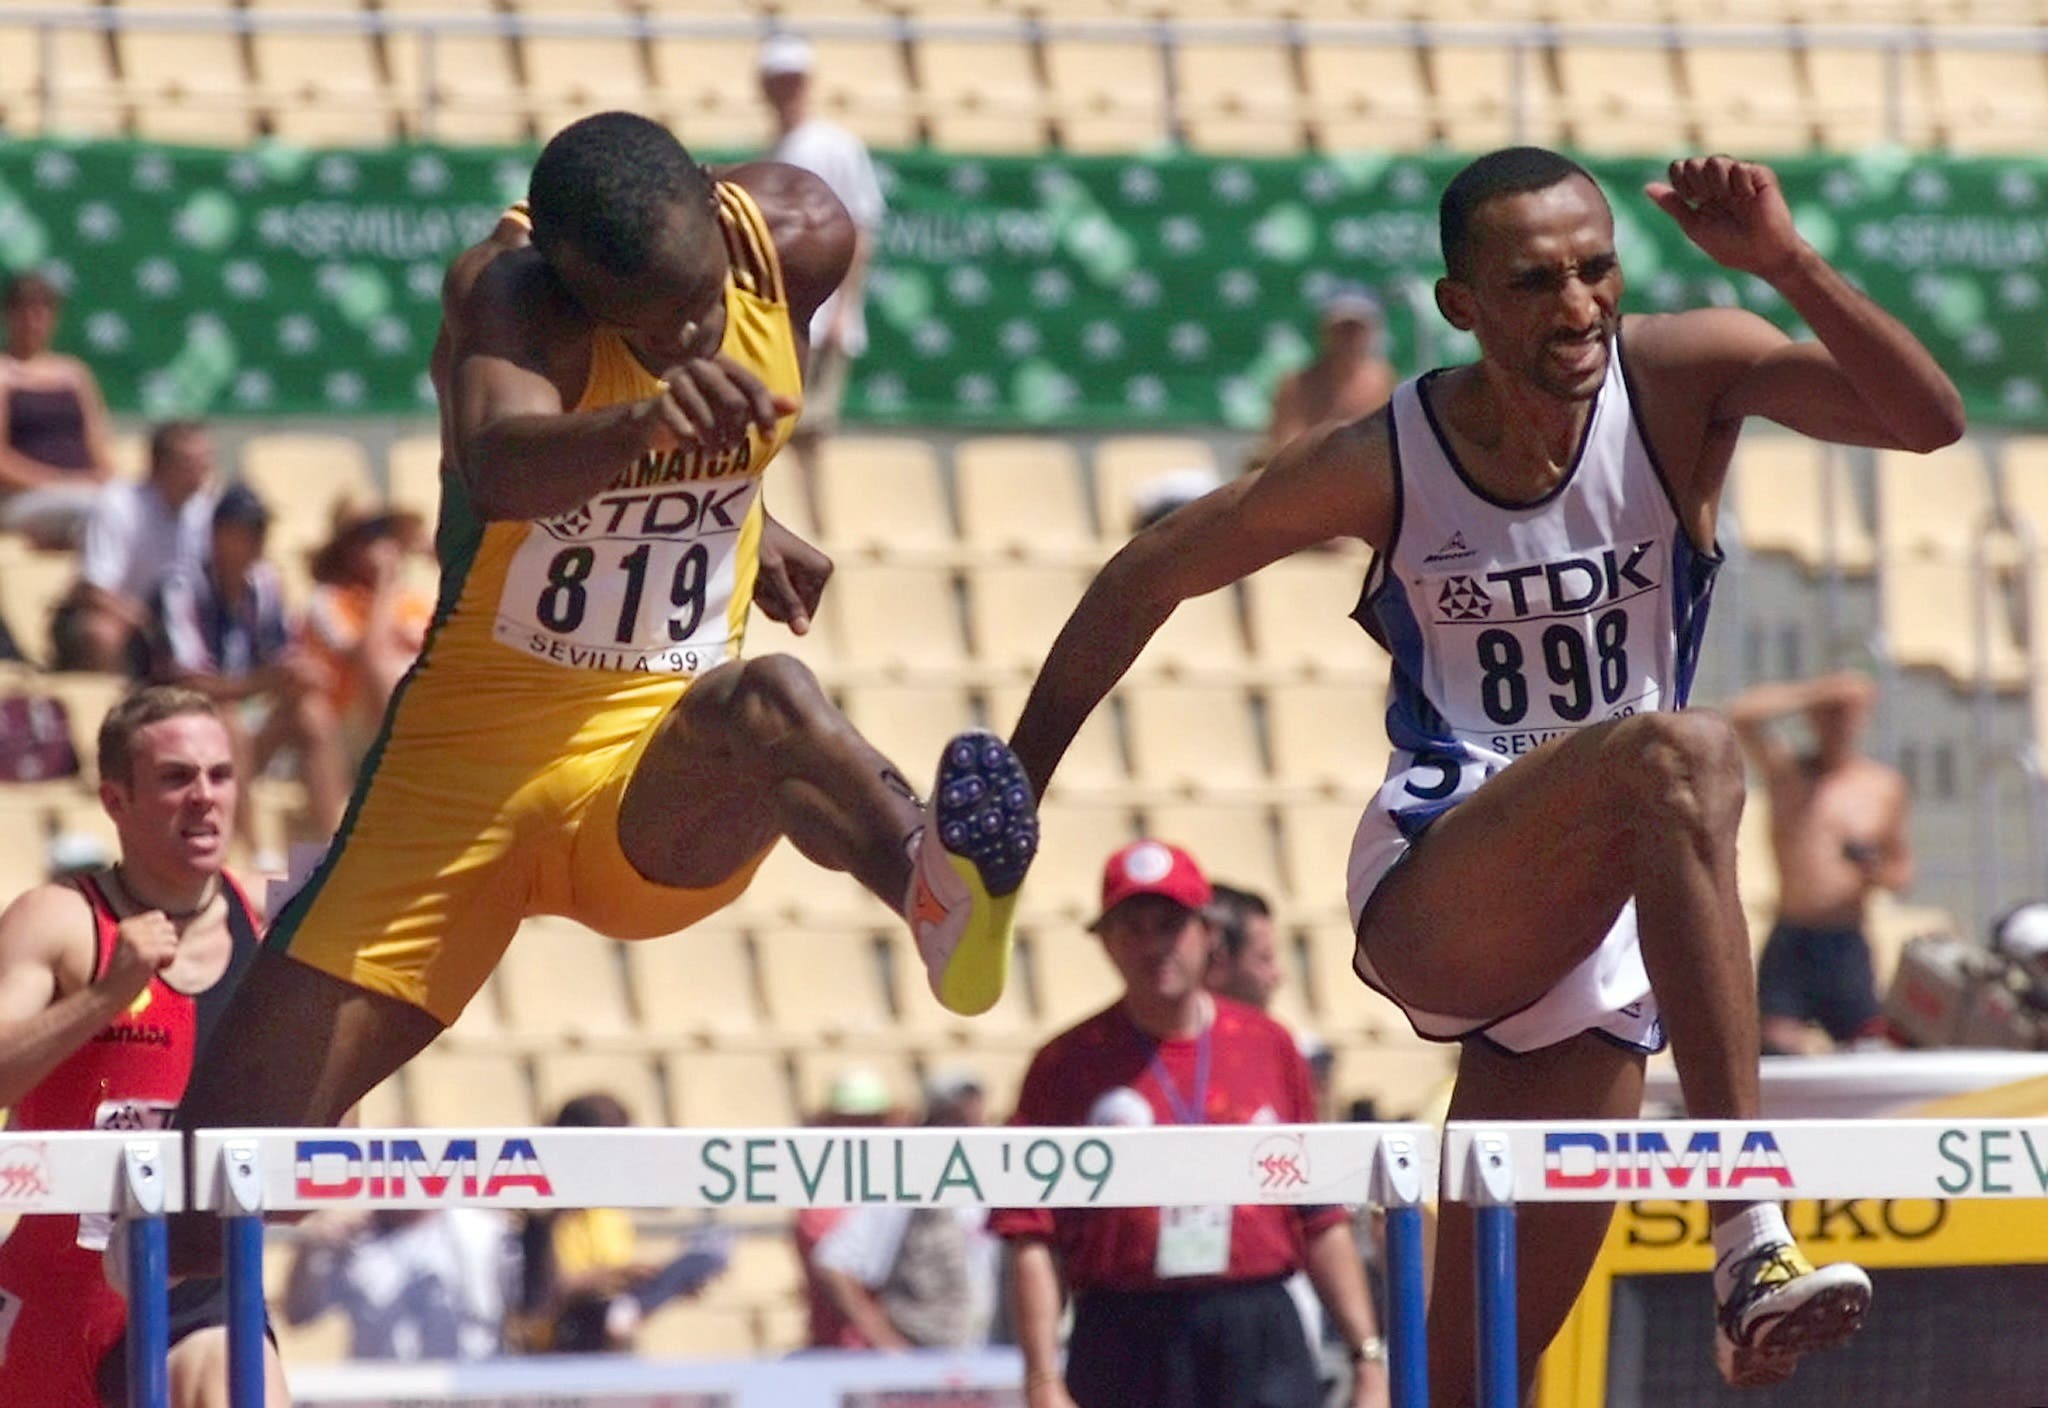 Jamaica's Dinsdale Morgan (L) and Saudi Hadi Soua'an al-Somaily clear a hurdle in heat 4 of the men's 400m hurdles competition at the World Athletics Championships in Seville 24 August 1999. (AFP)